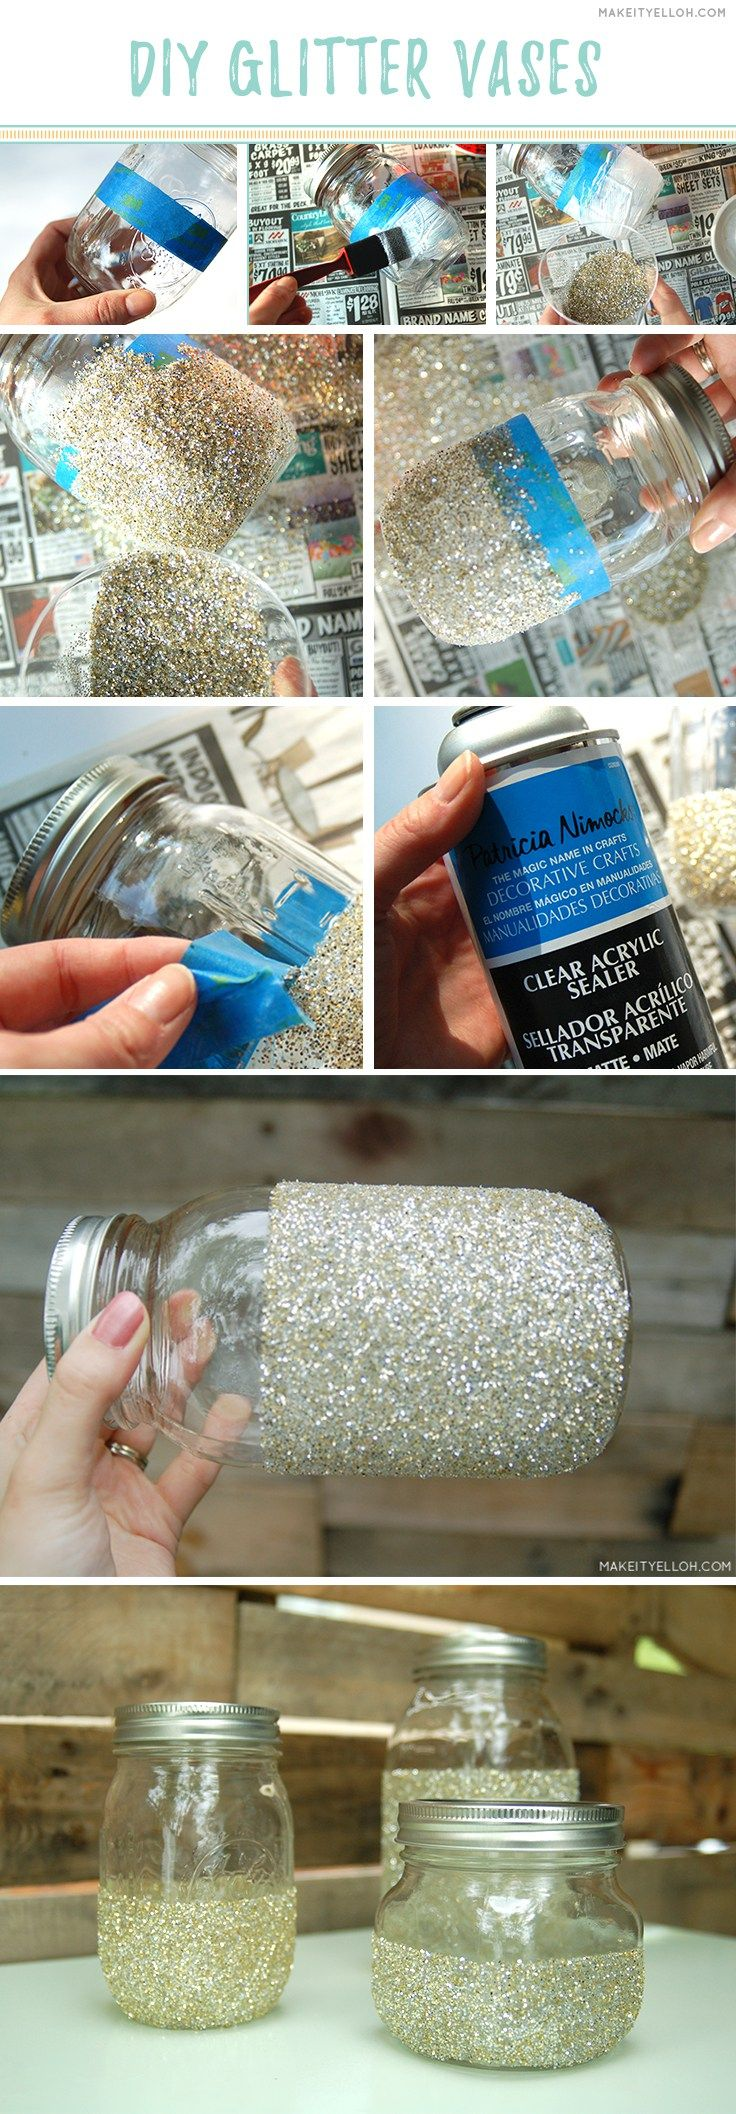 Easy and cheap diy glitter vases perfect for events showers or